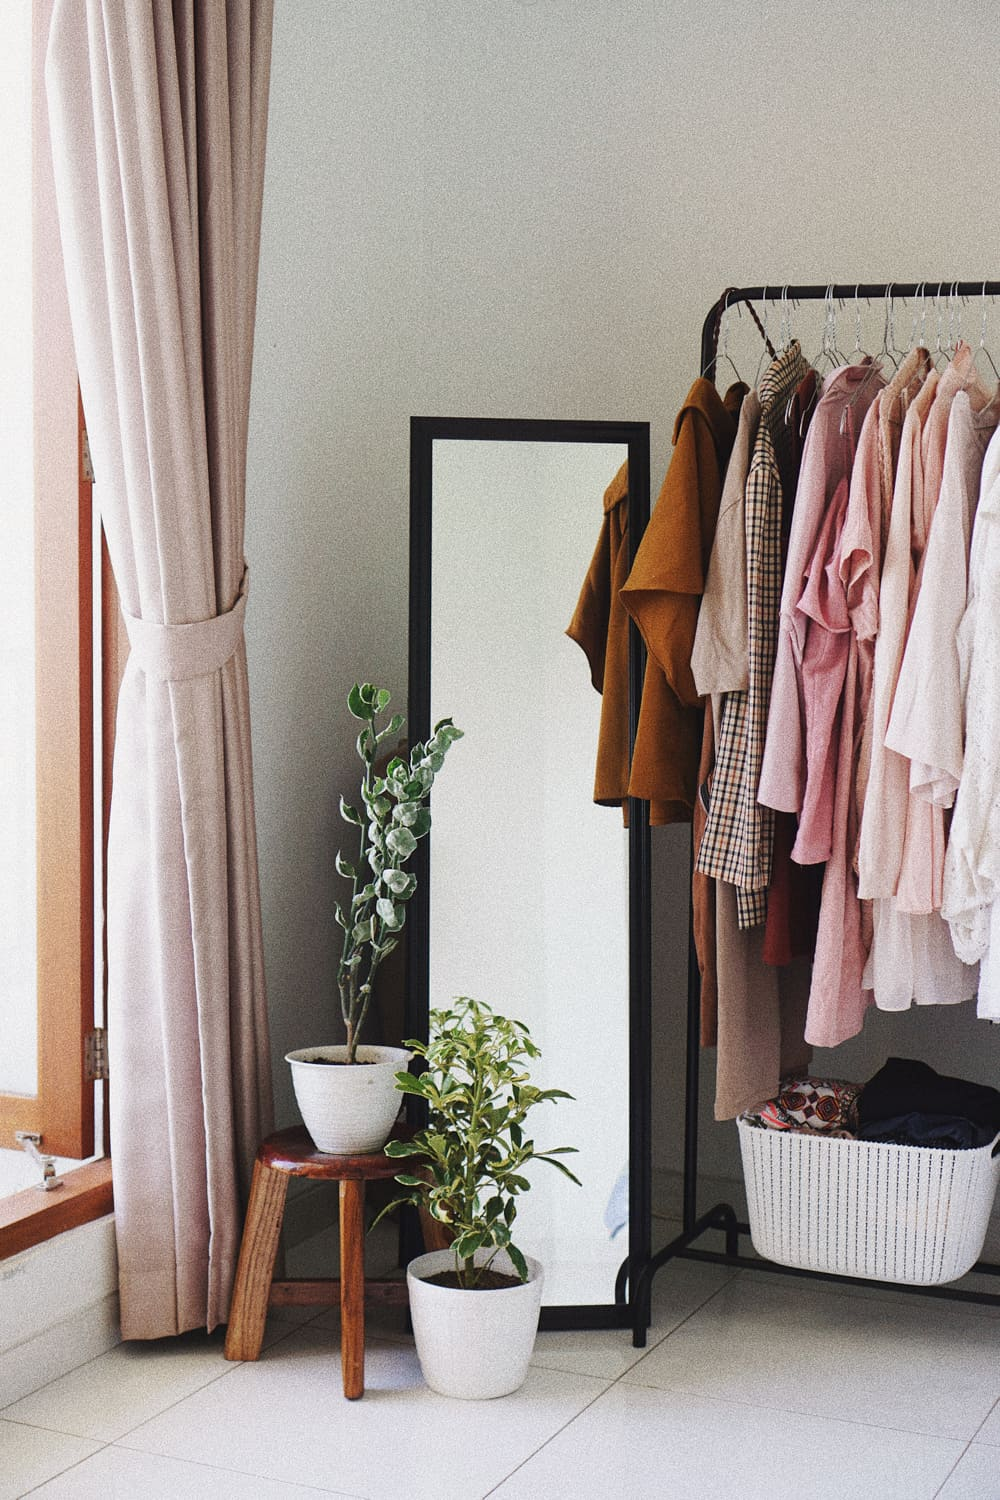 Corner of room with window, mirror, plants and clothes hanger with clothes.